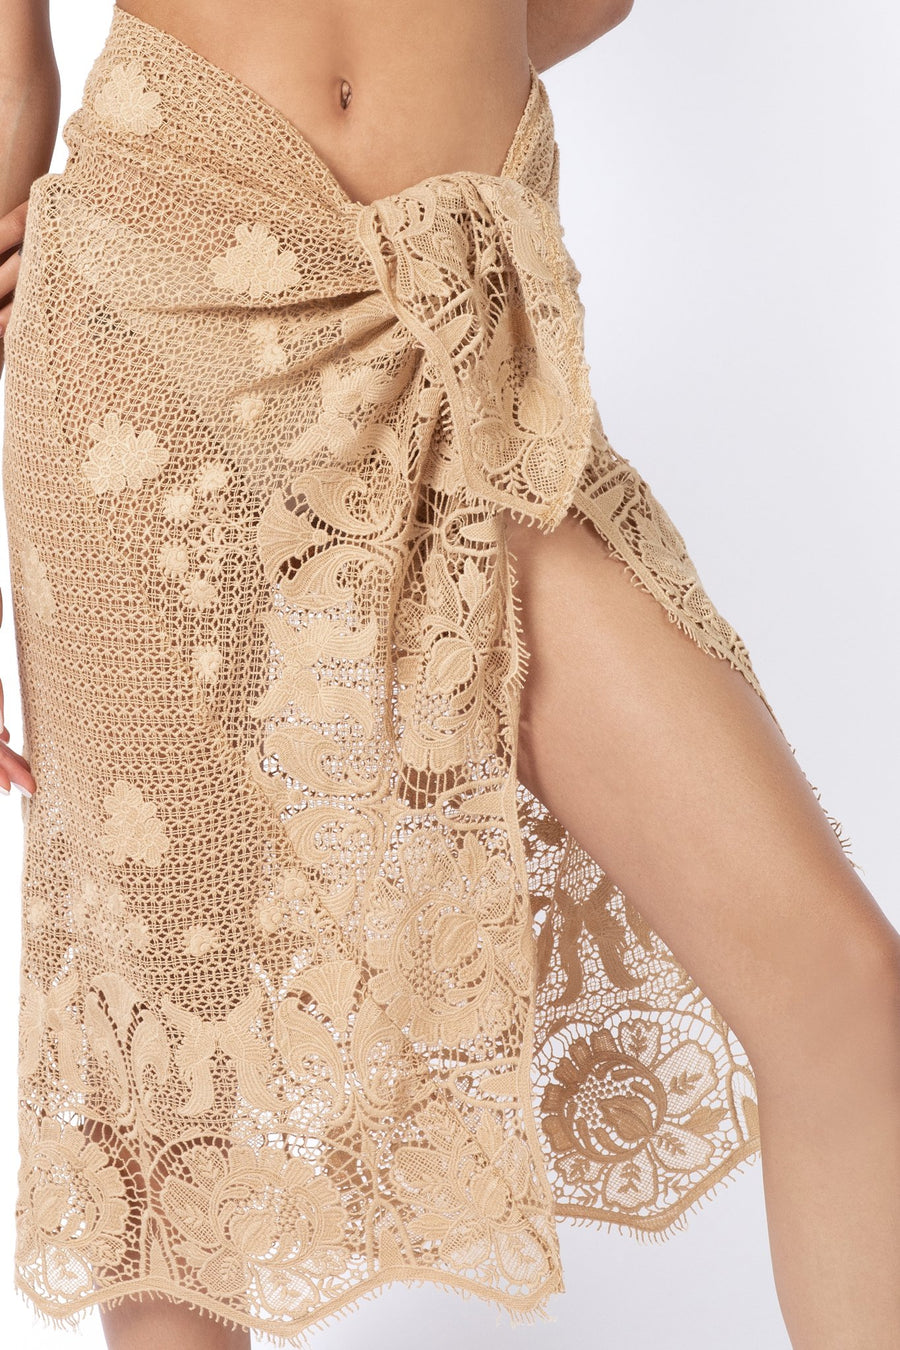 This is a close-up photo of the lace scalloped pareo tied around the model's waist.